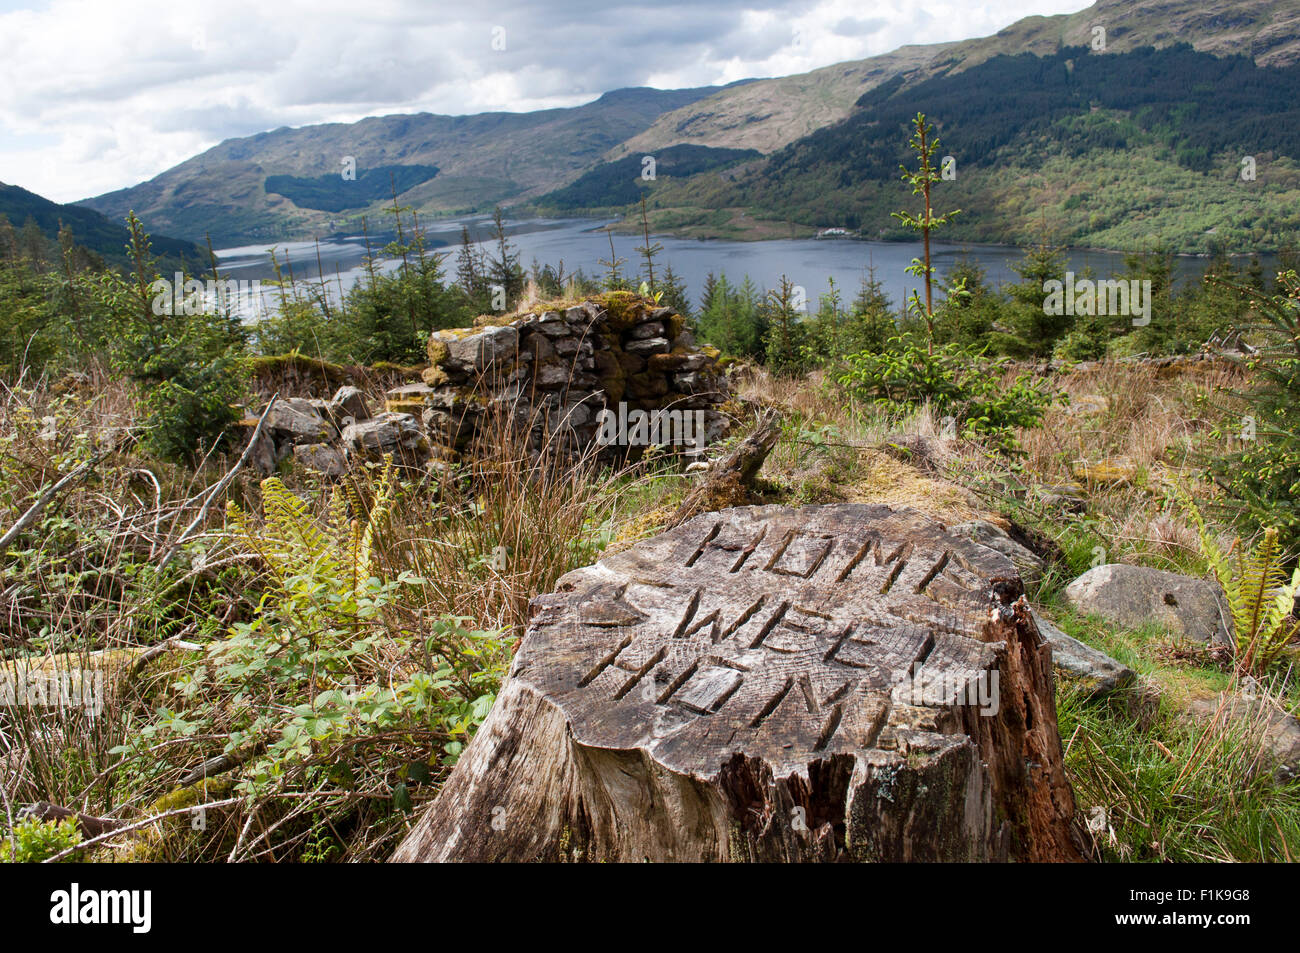 lake in distance and tree trunk with home sweet home engraved - Stock Image